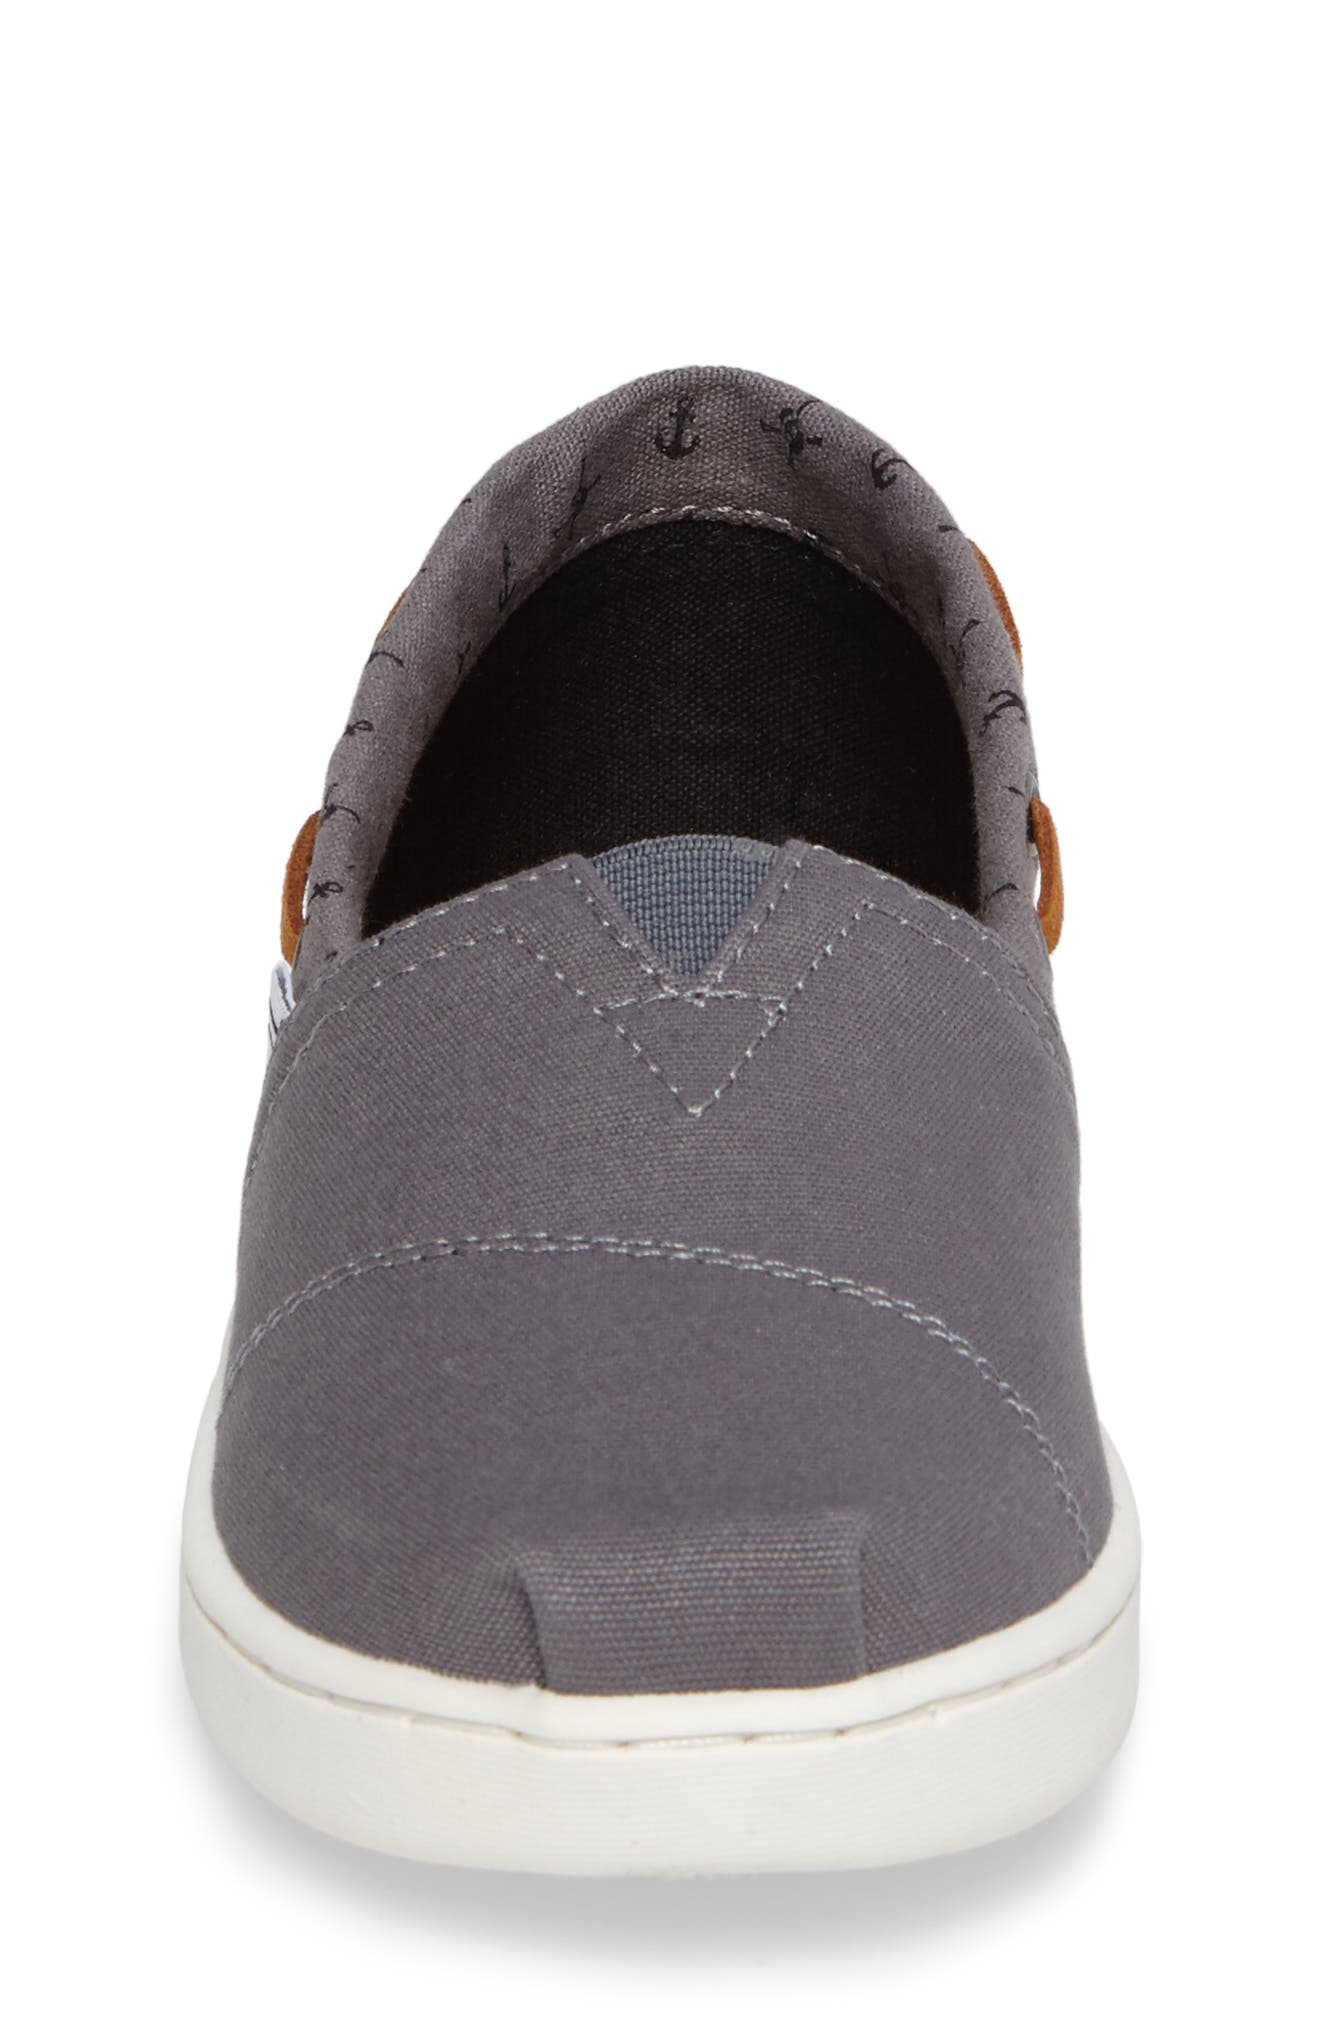 Alternate Image 4  - TOMS Bimini Boat Shoe Sneaker (Toddler, Little Kid & Big Kid)